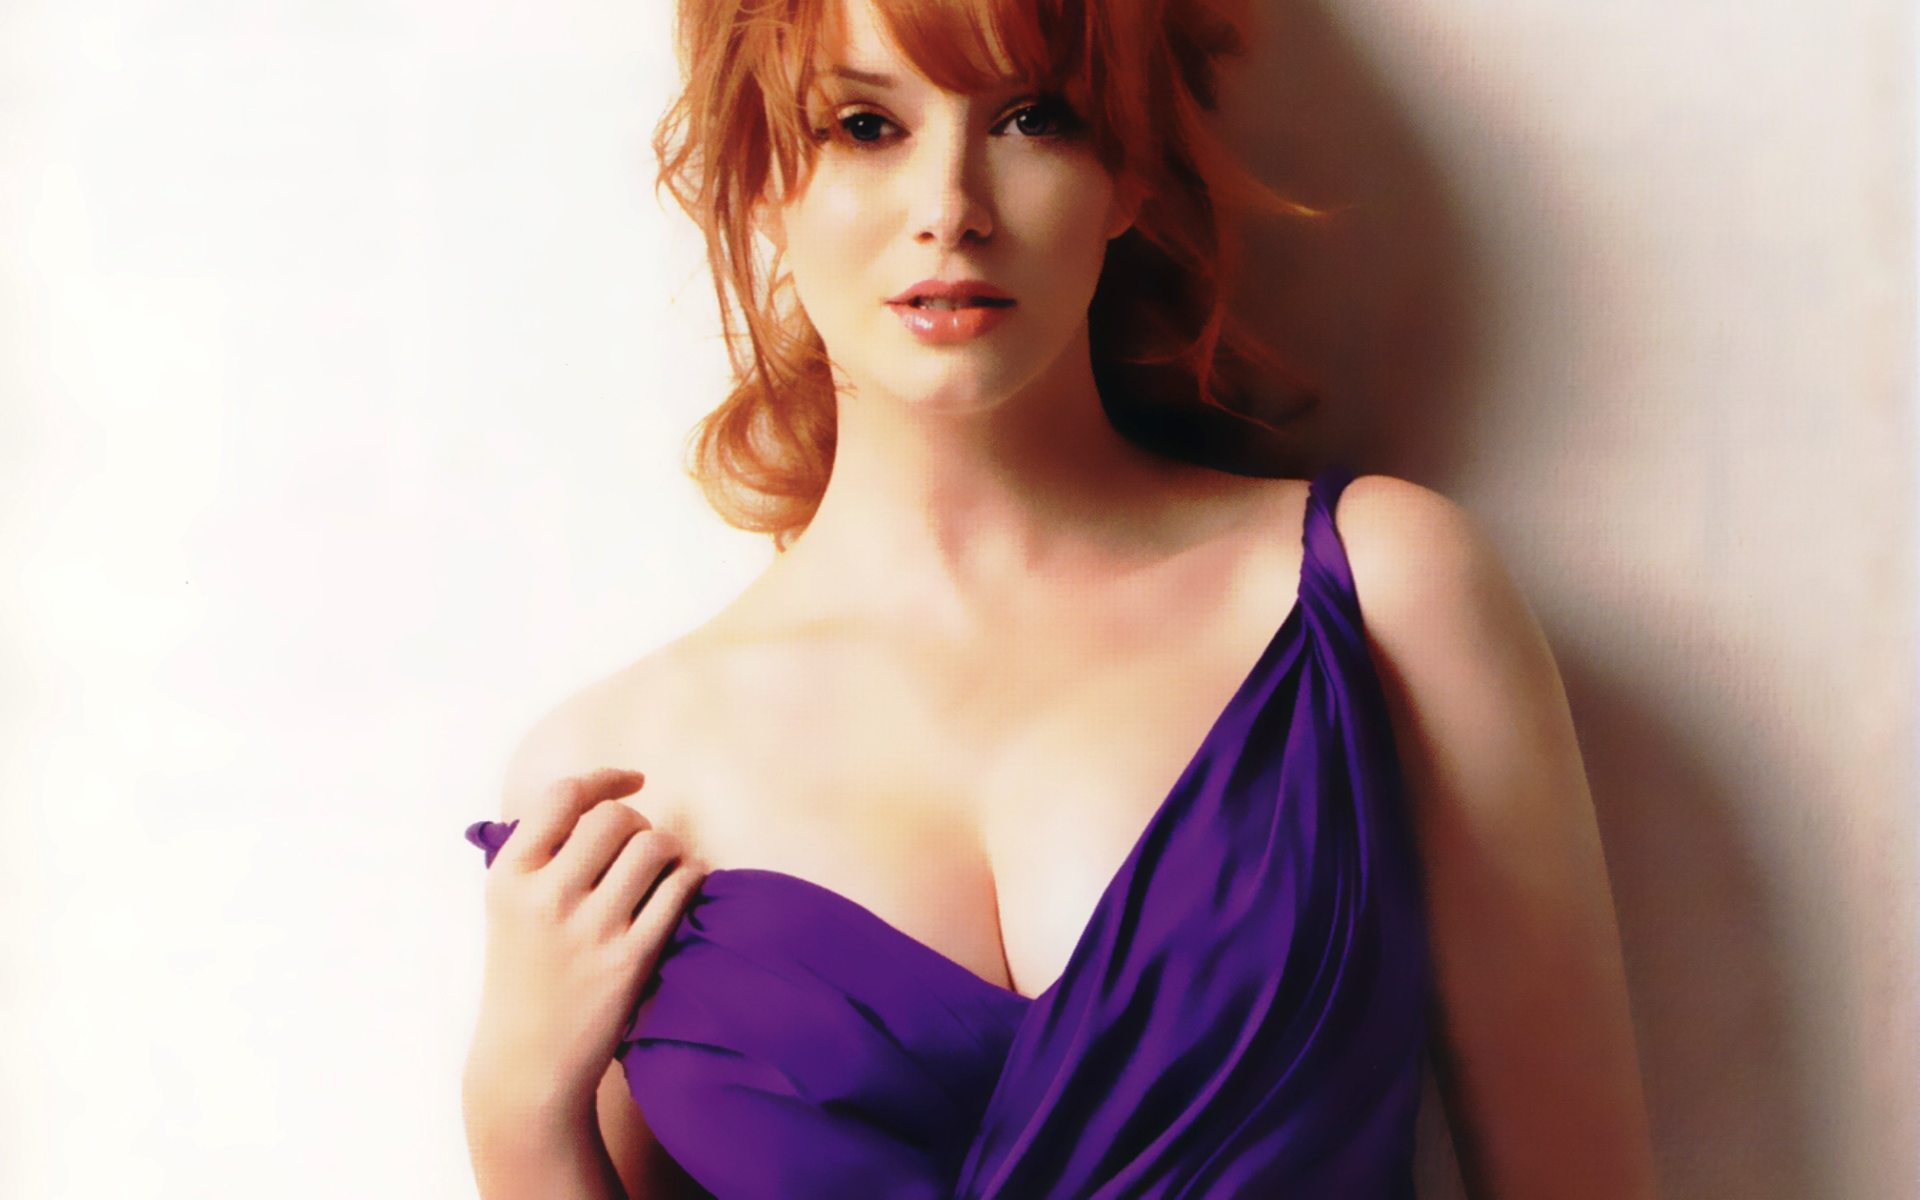 Christina Hendricks Desktop wallpaper